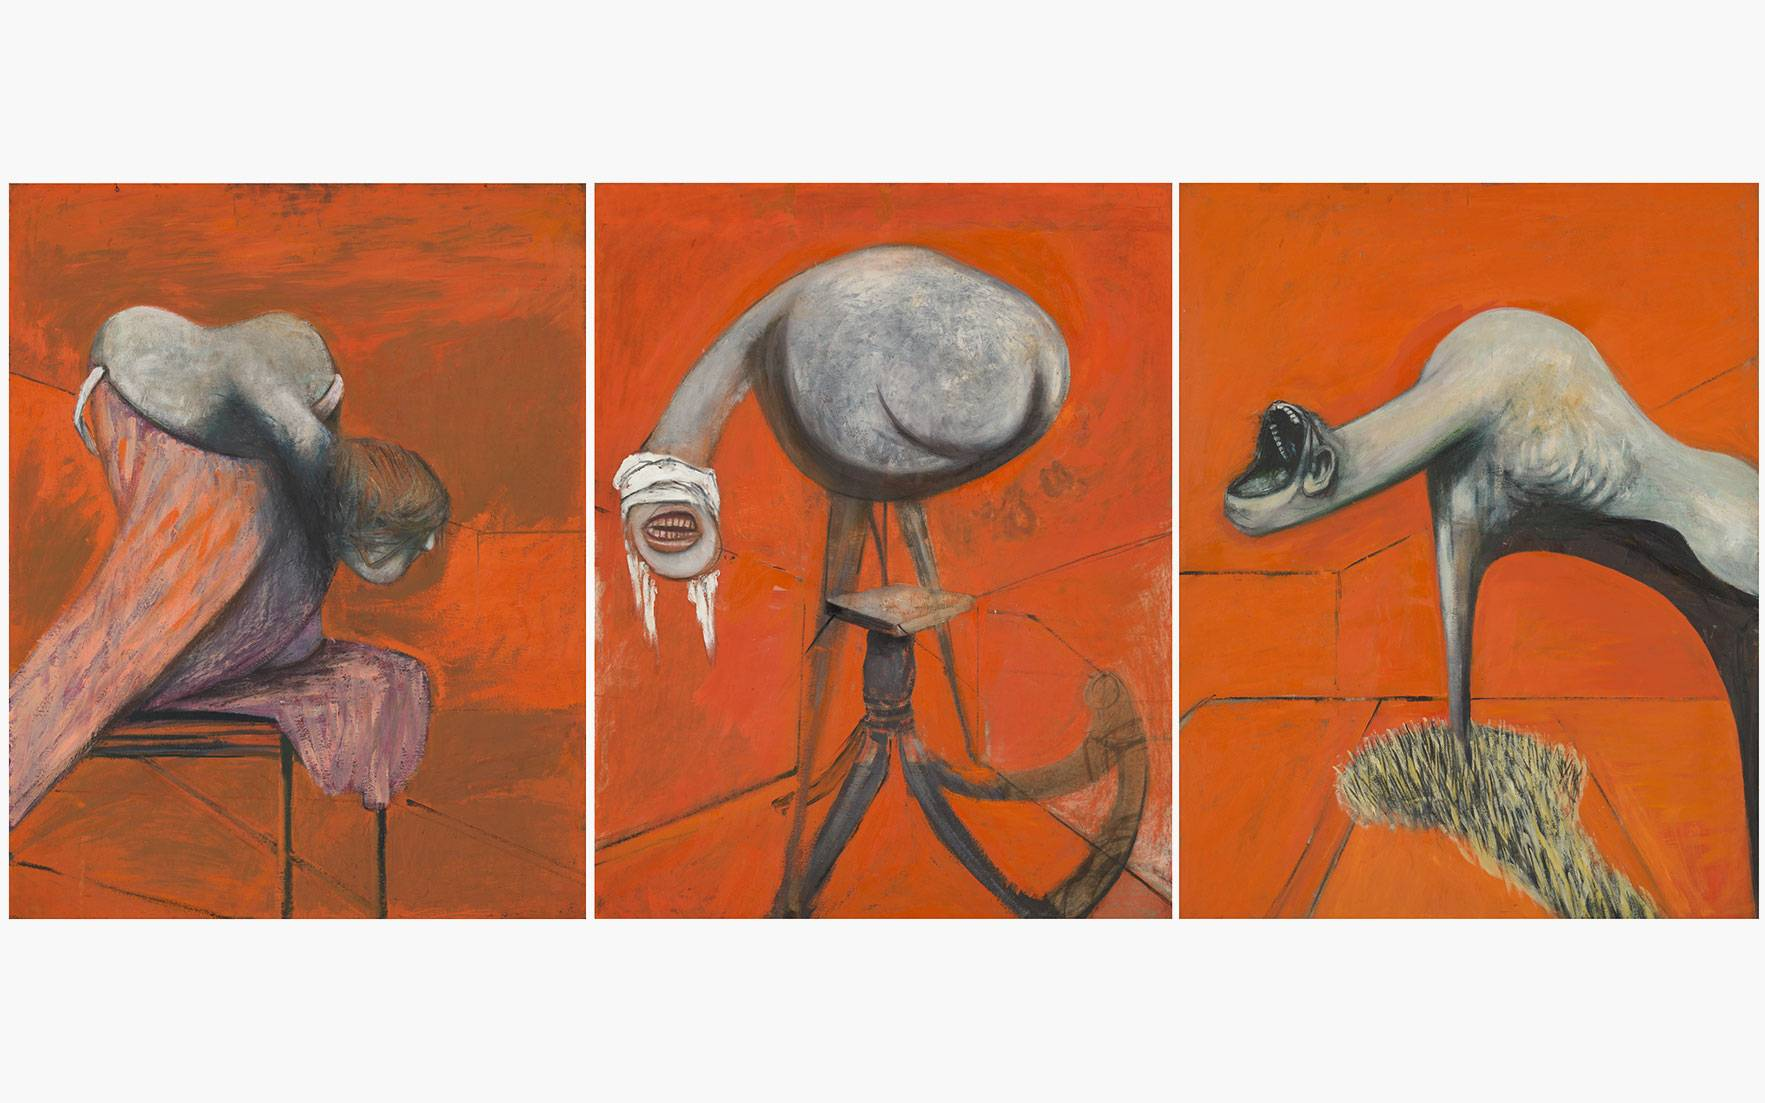 Francis Bacon (1909-1992), Three Studies for Figures at the Base of a Crucifixion c.1944, Oil paint on 3 boards. Each 940 x 737 mm. © The Estate of Francis Bacon. All rights reserved. DACS 2016.